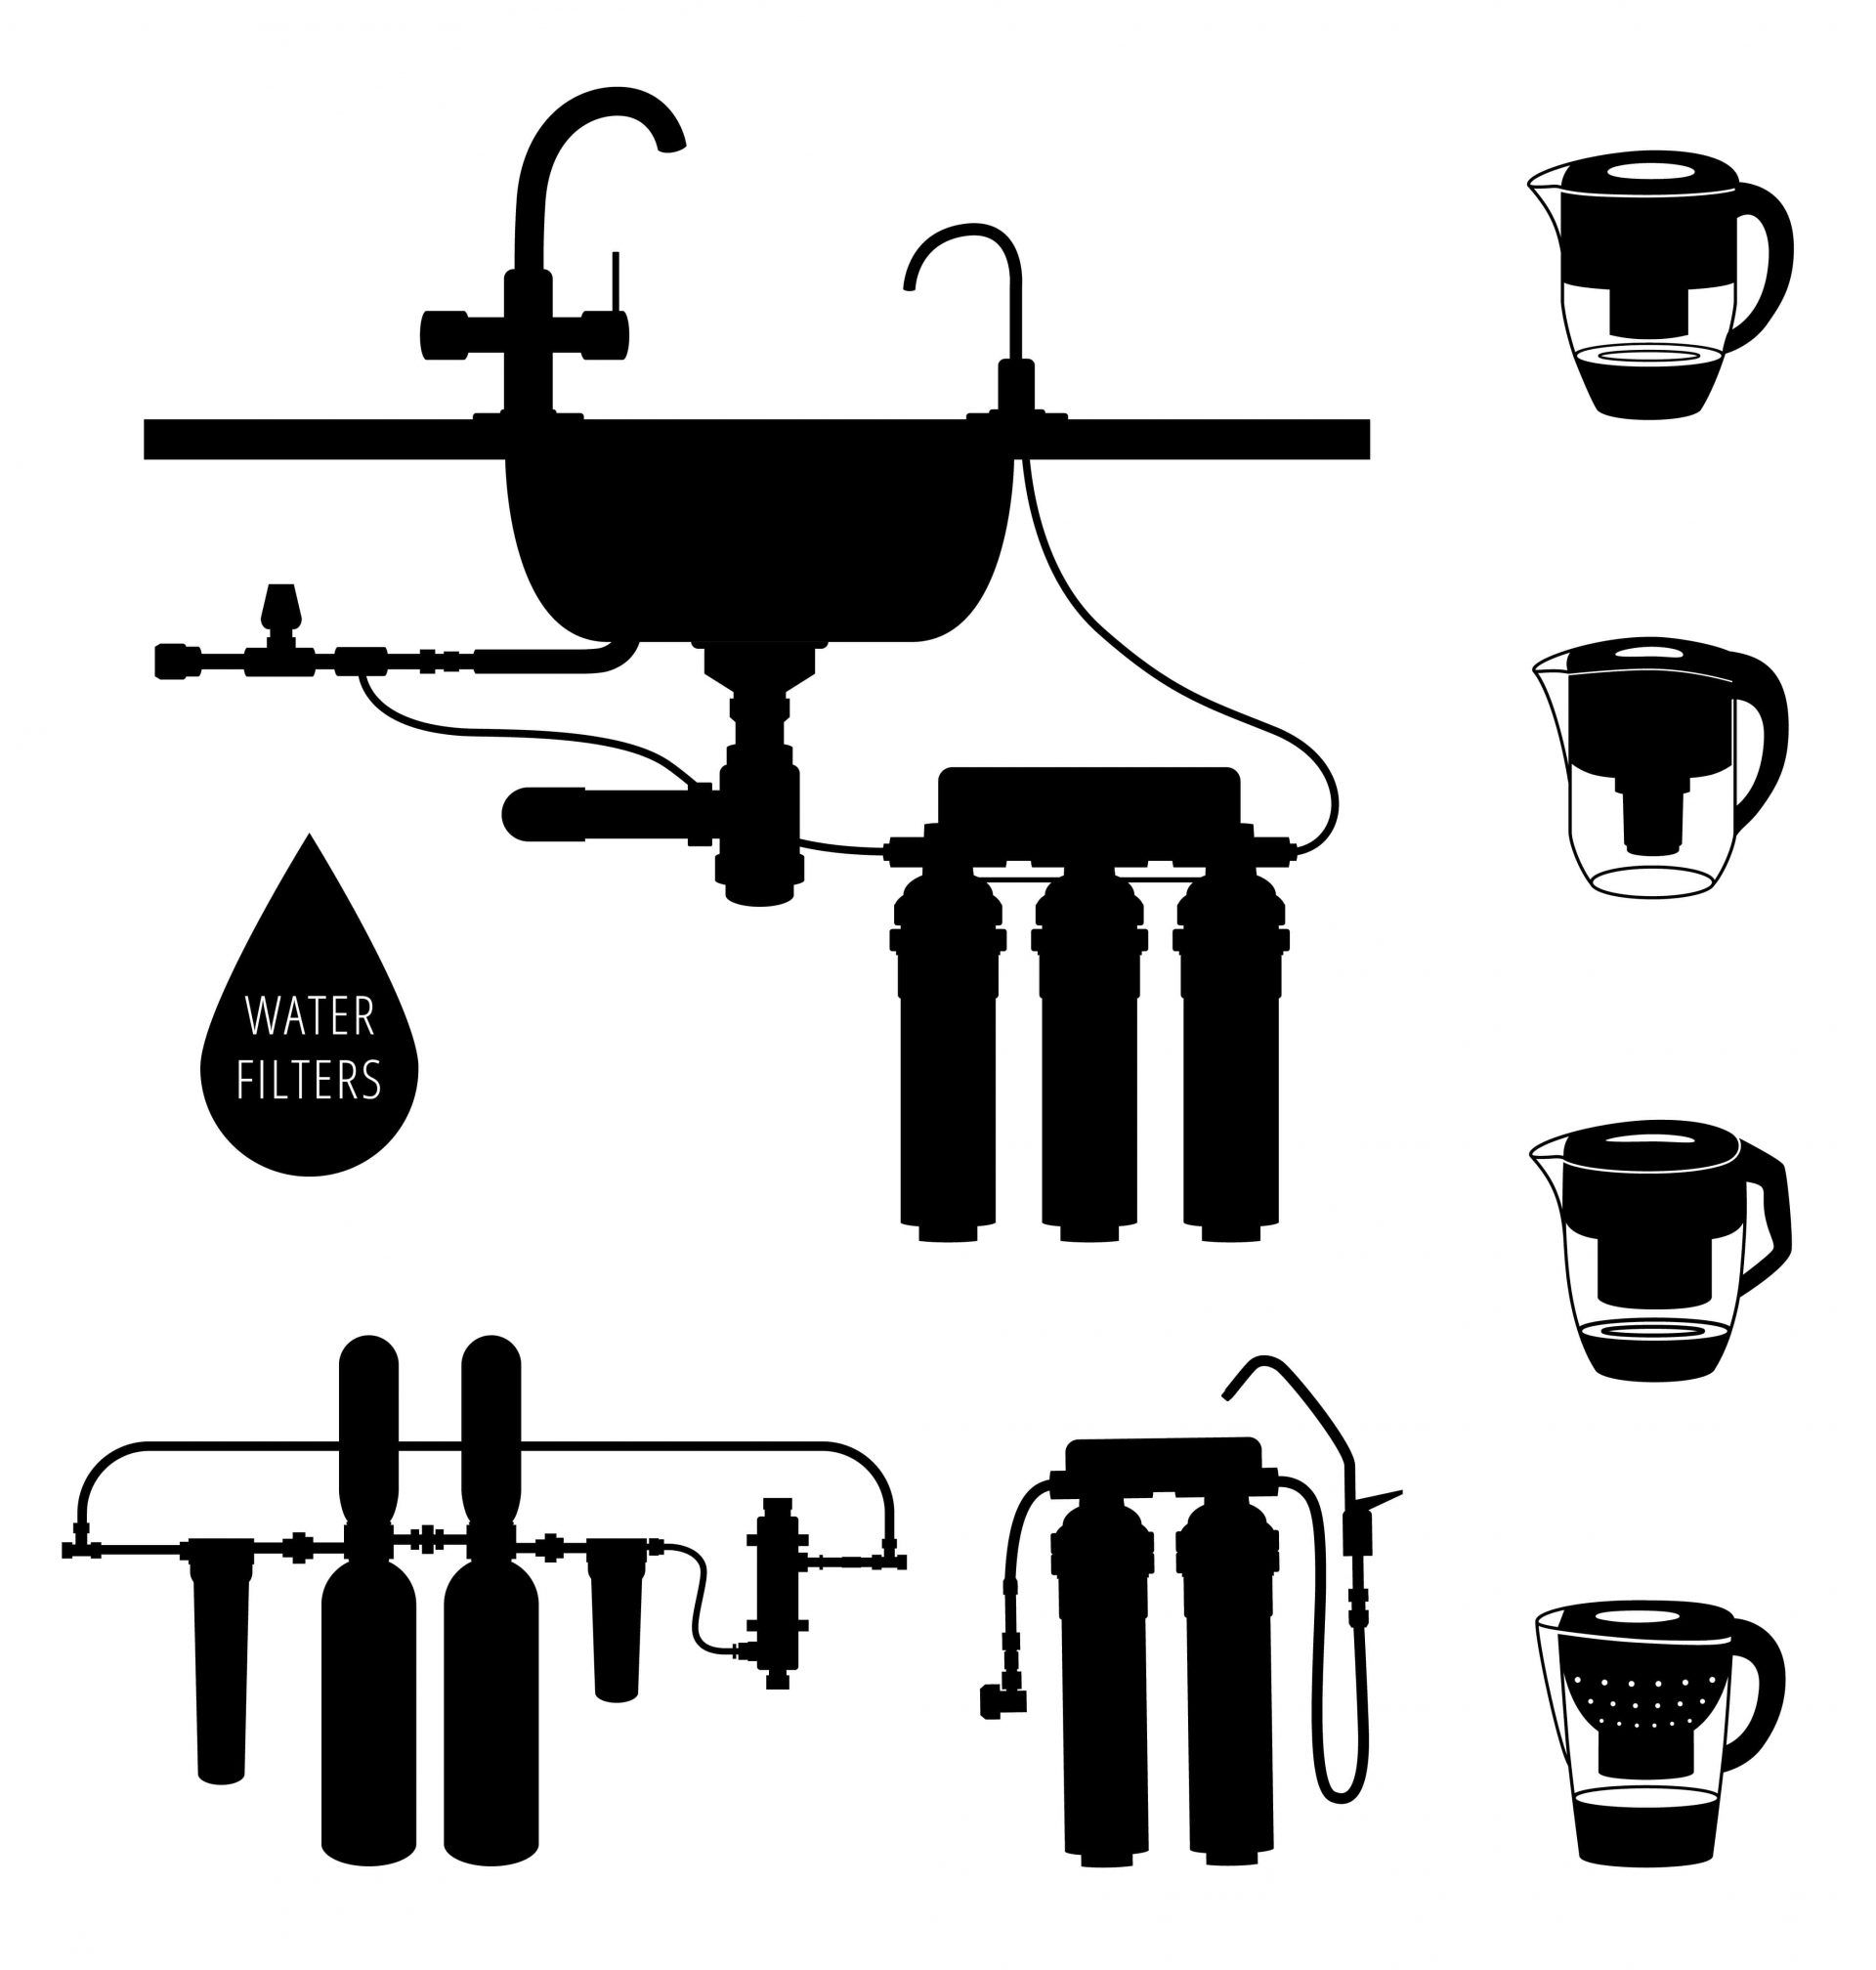 Various types of water filters black silhouette